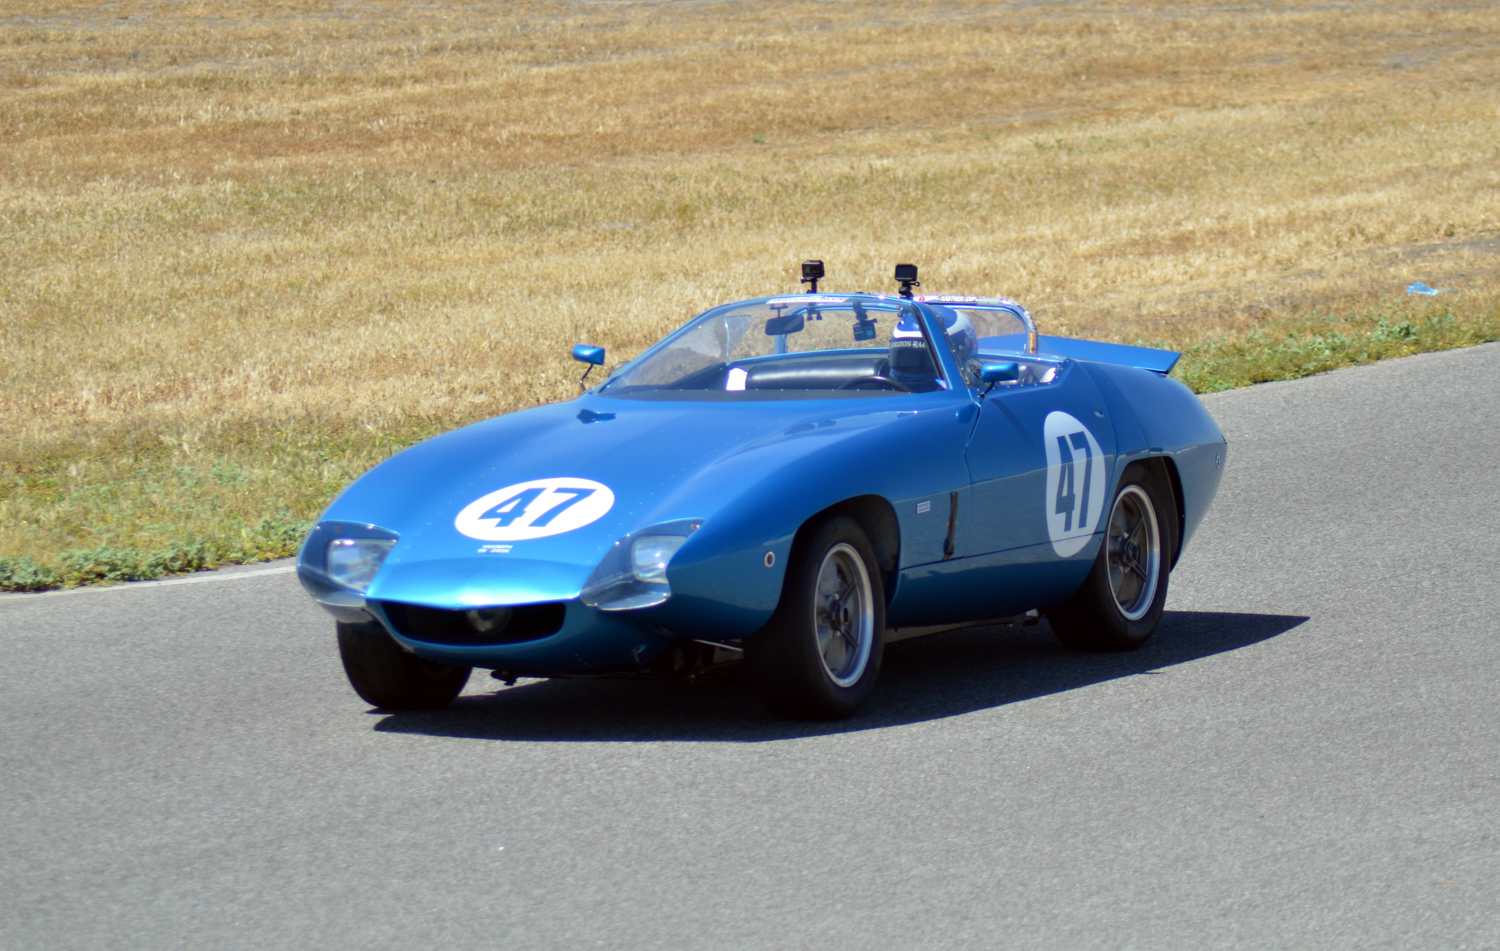 #47 Tony Garmey, 1967 TR250K. Best Lap: 2:09.322 Performance Award Prototype